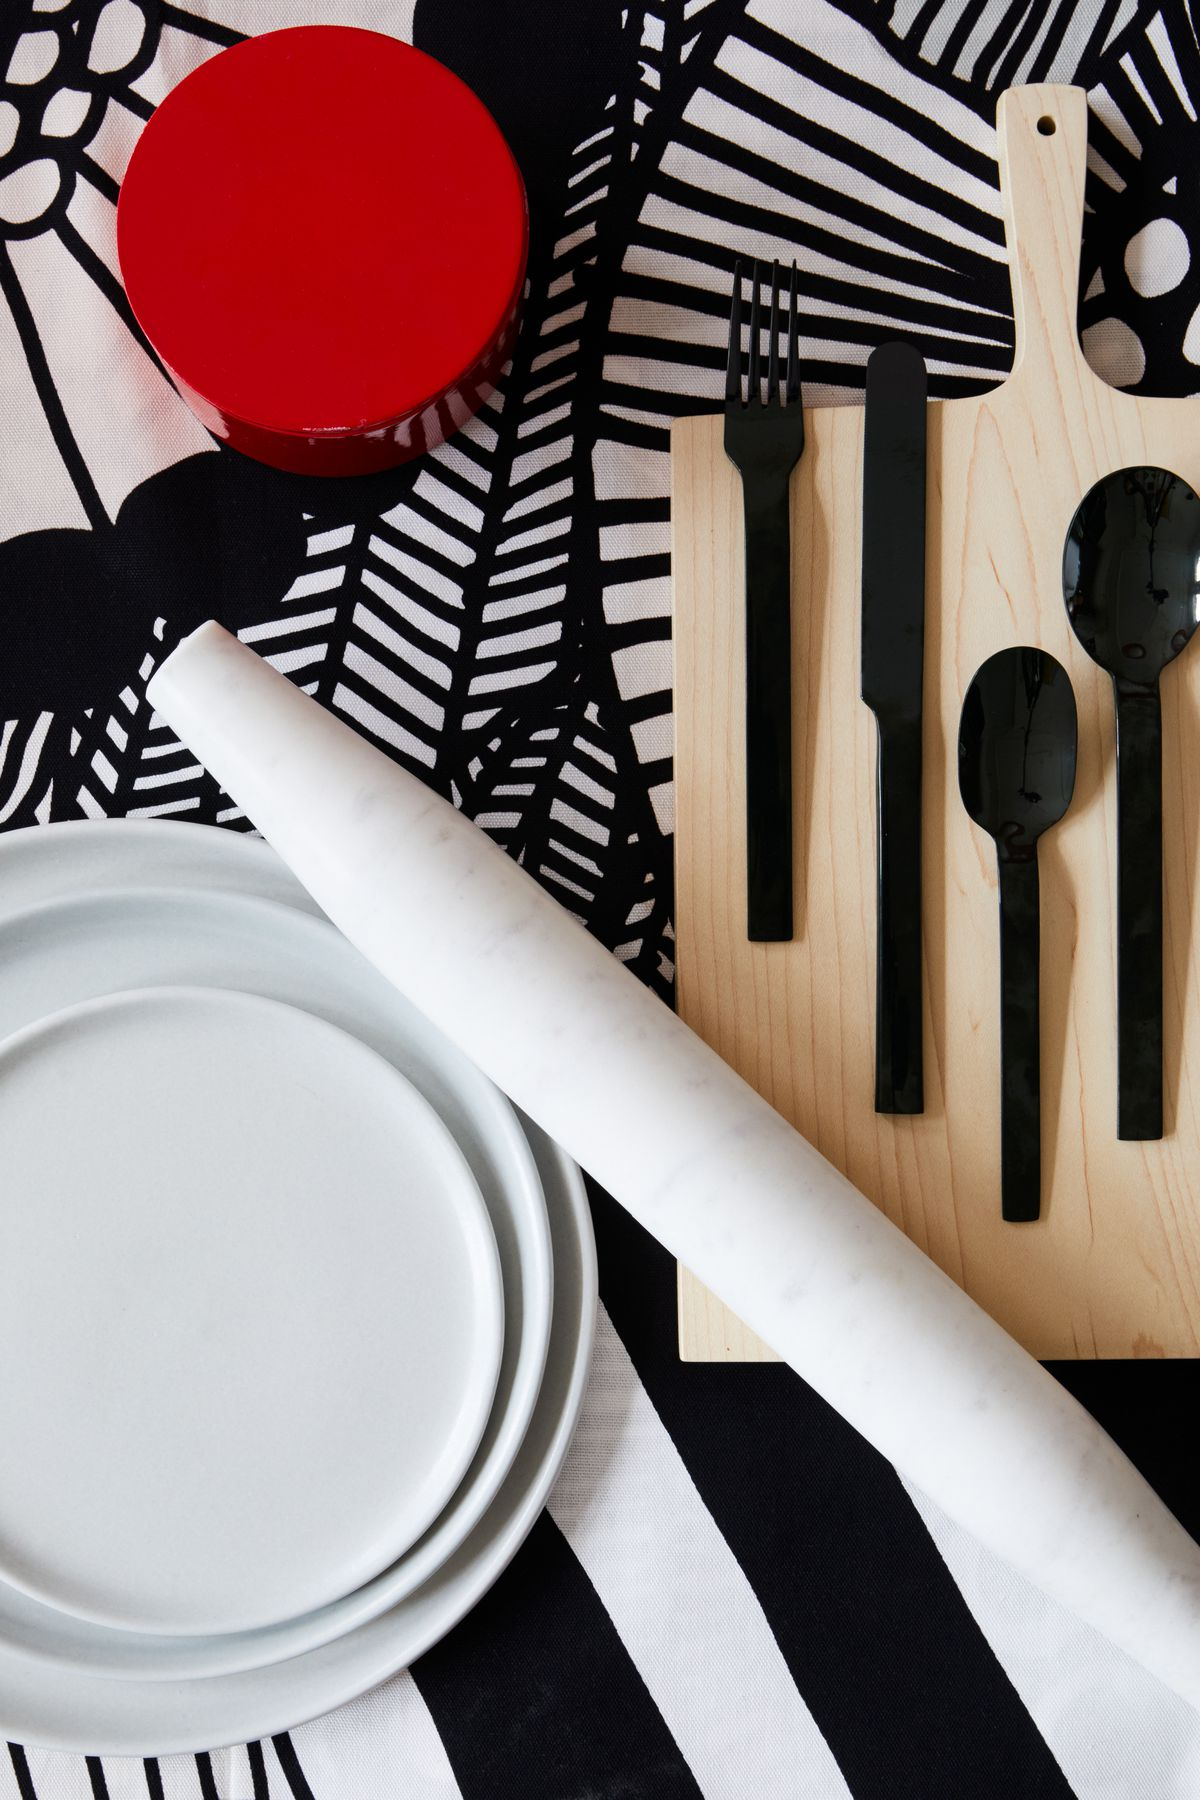 A rolling pin and other assorted tableware on a table with an abstract black and white patterned surface.